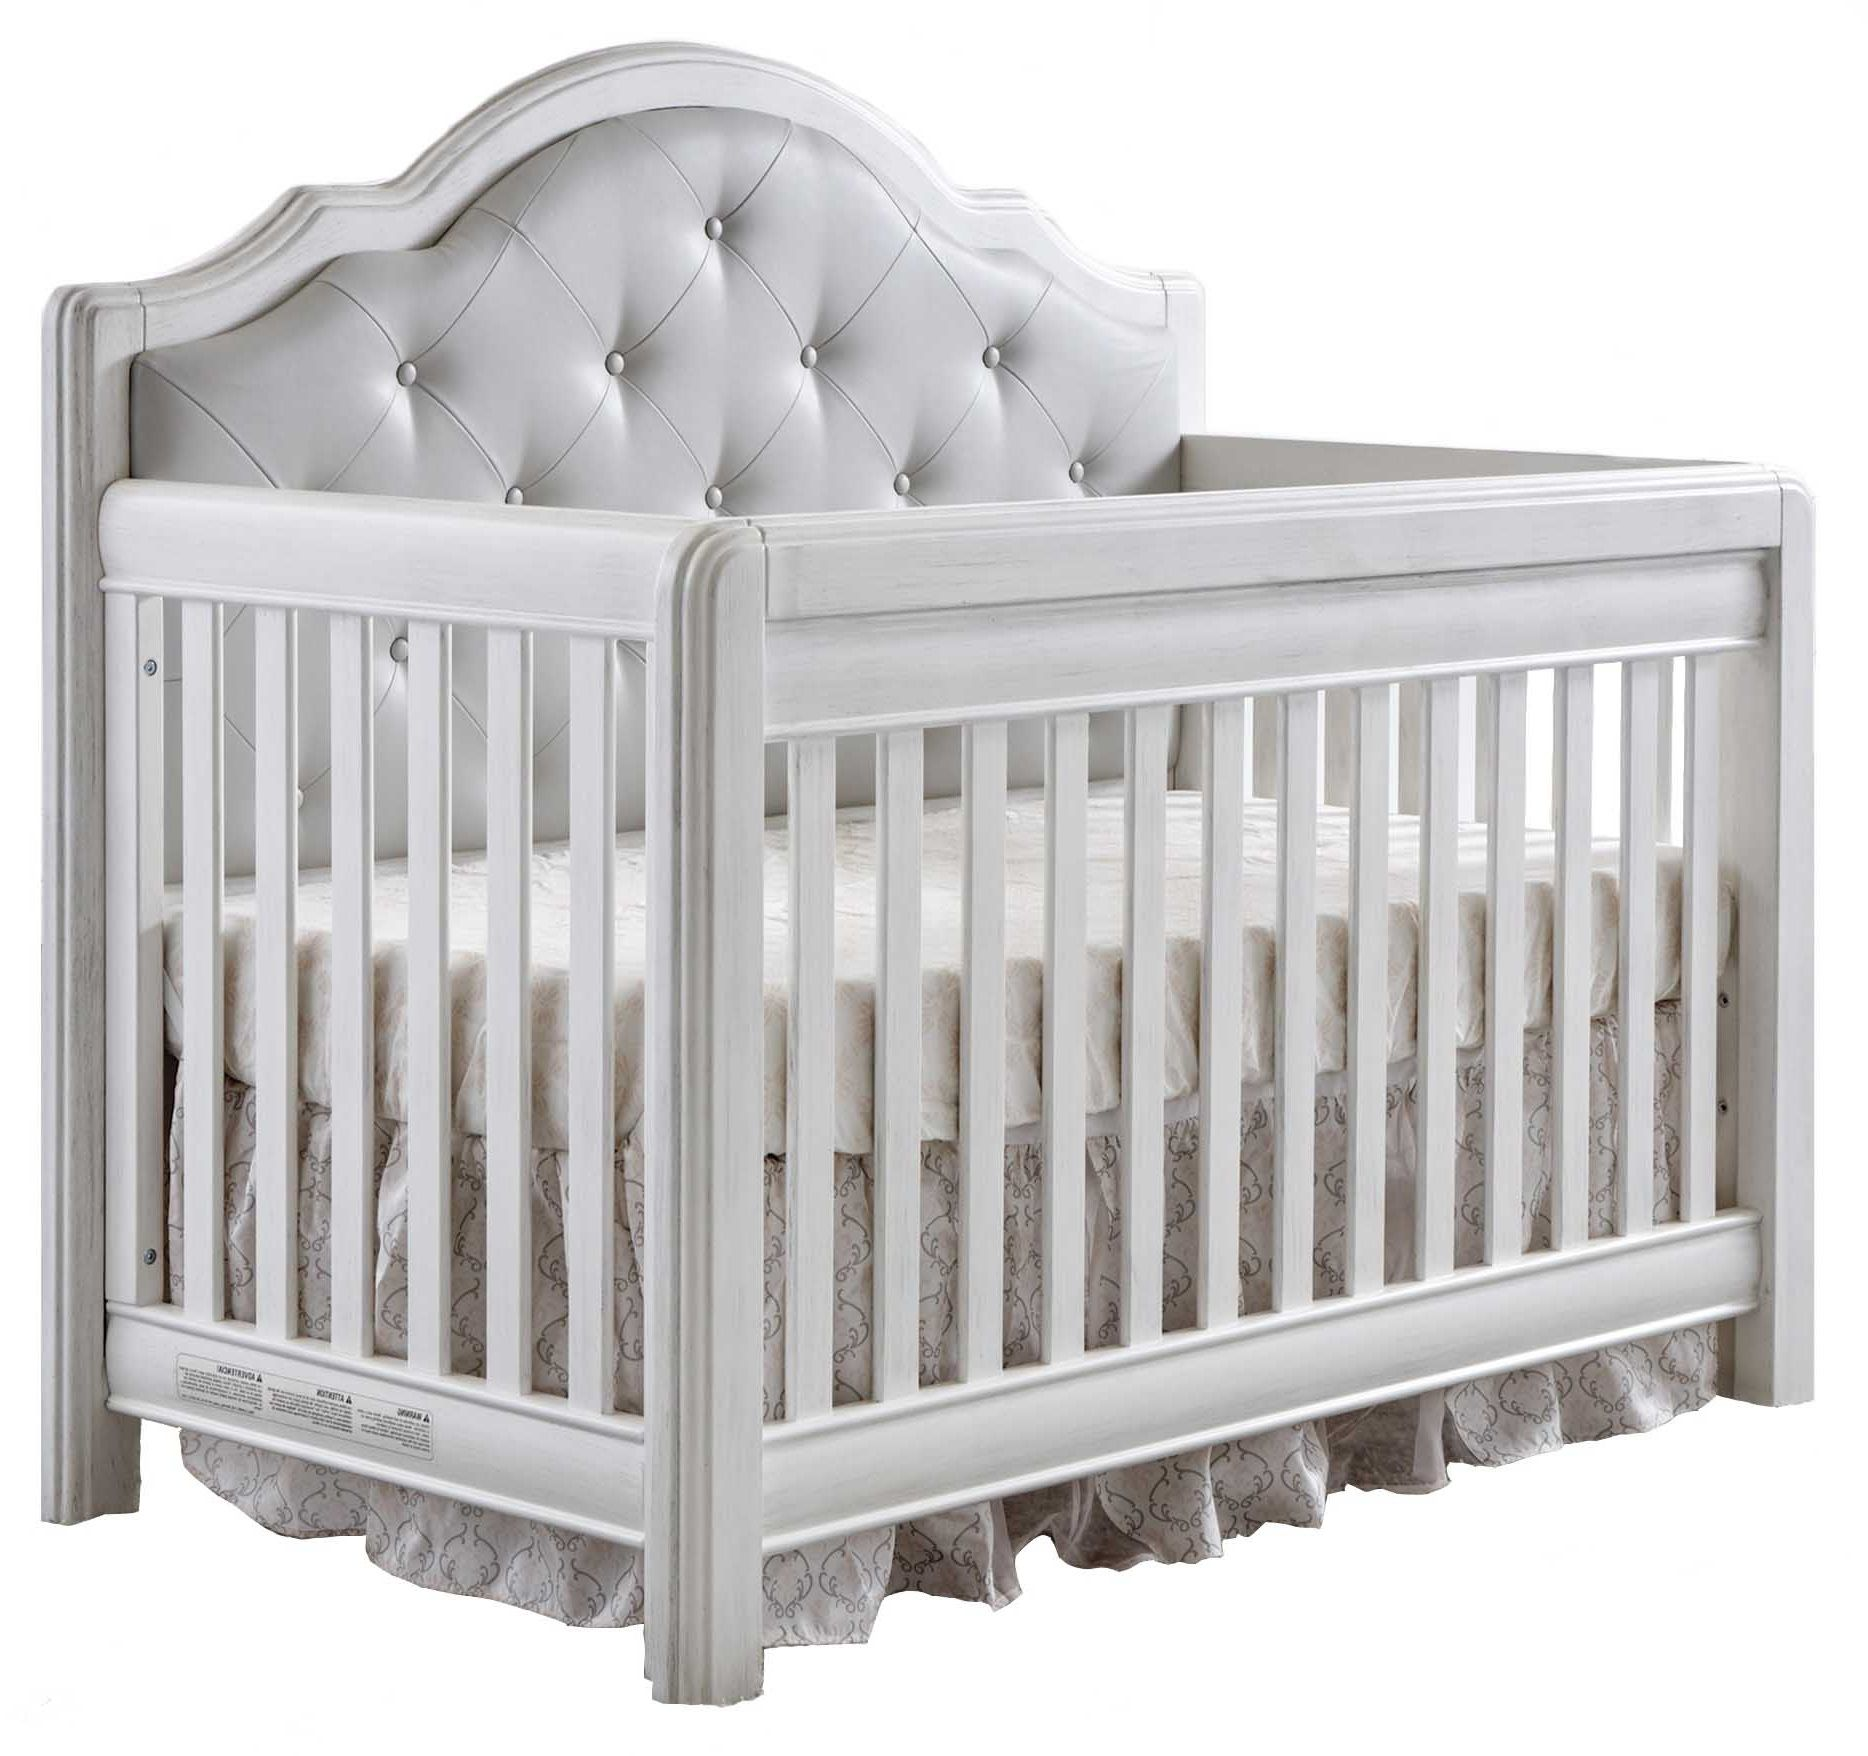 Vintage white crib for sale - Pali Cristallo Forever Crib In Vintage White With Leather Panel